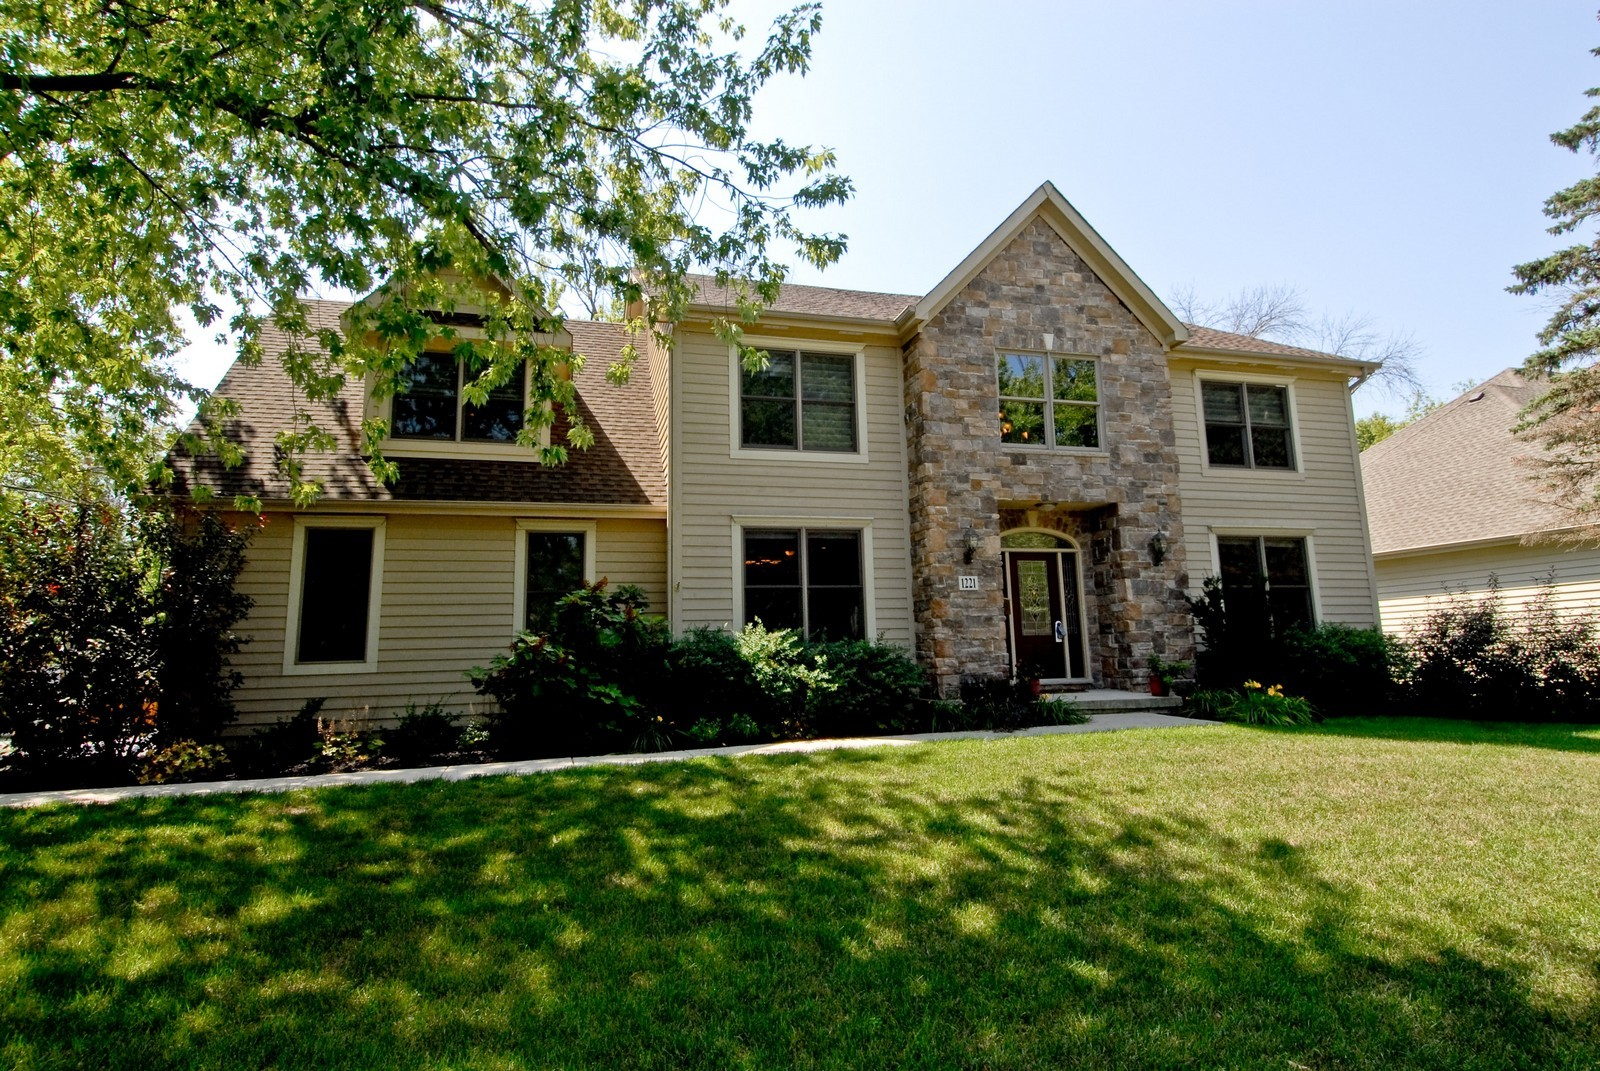 Real Estate Photography - 1221 Wing Ave, St. Charles, IL, 60174 - Front View